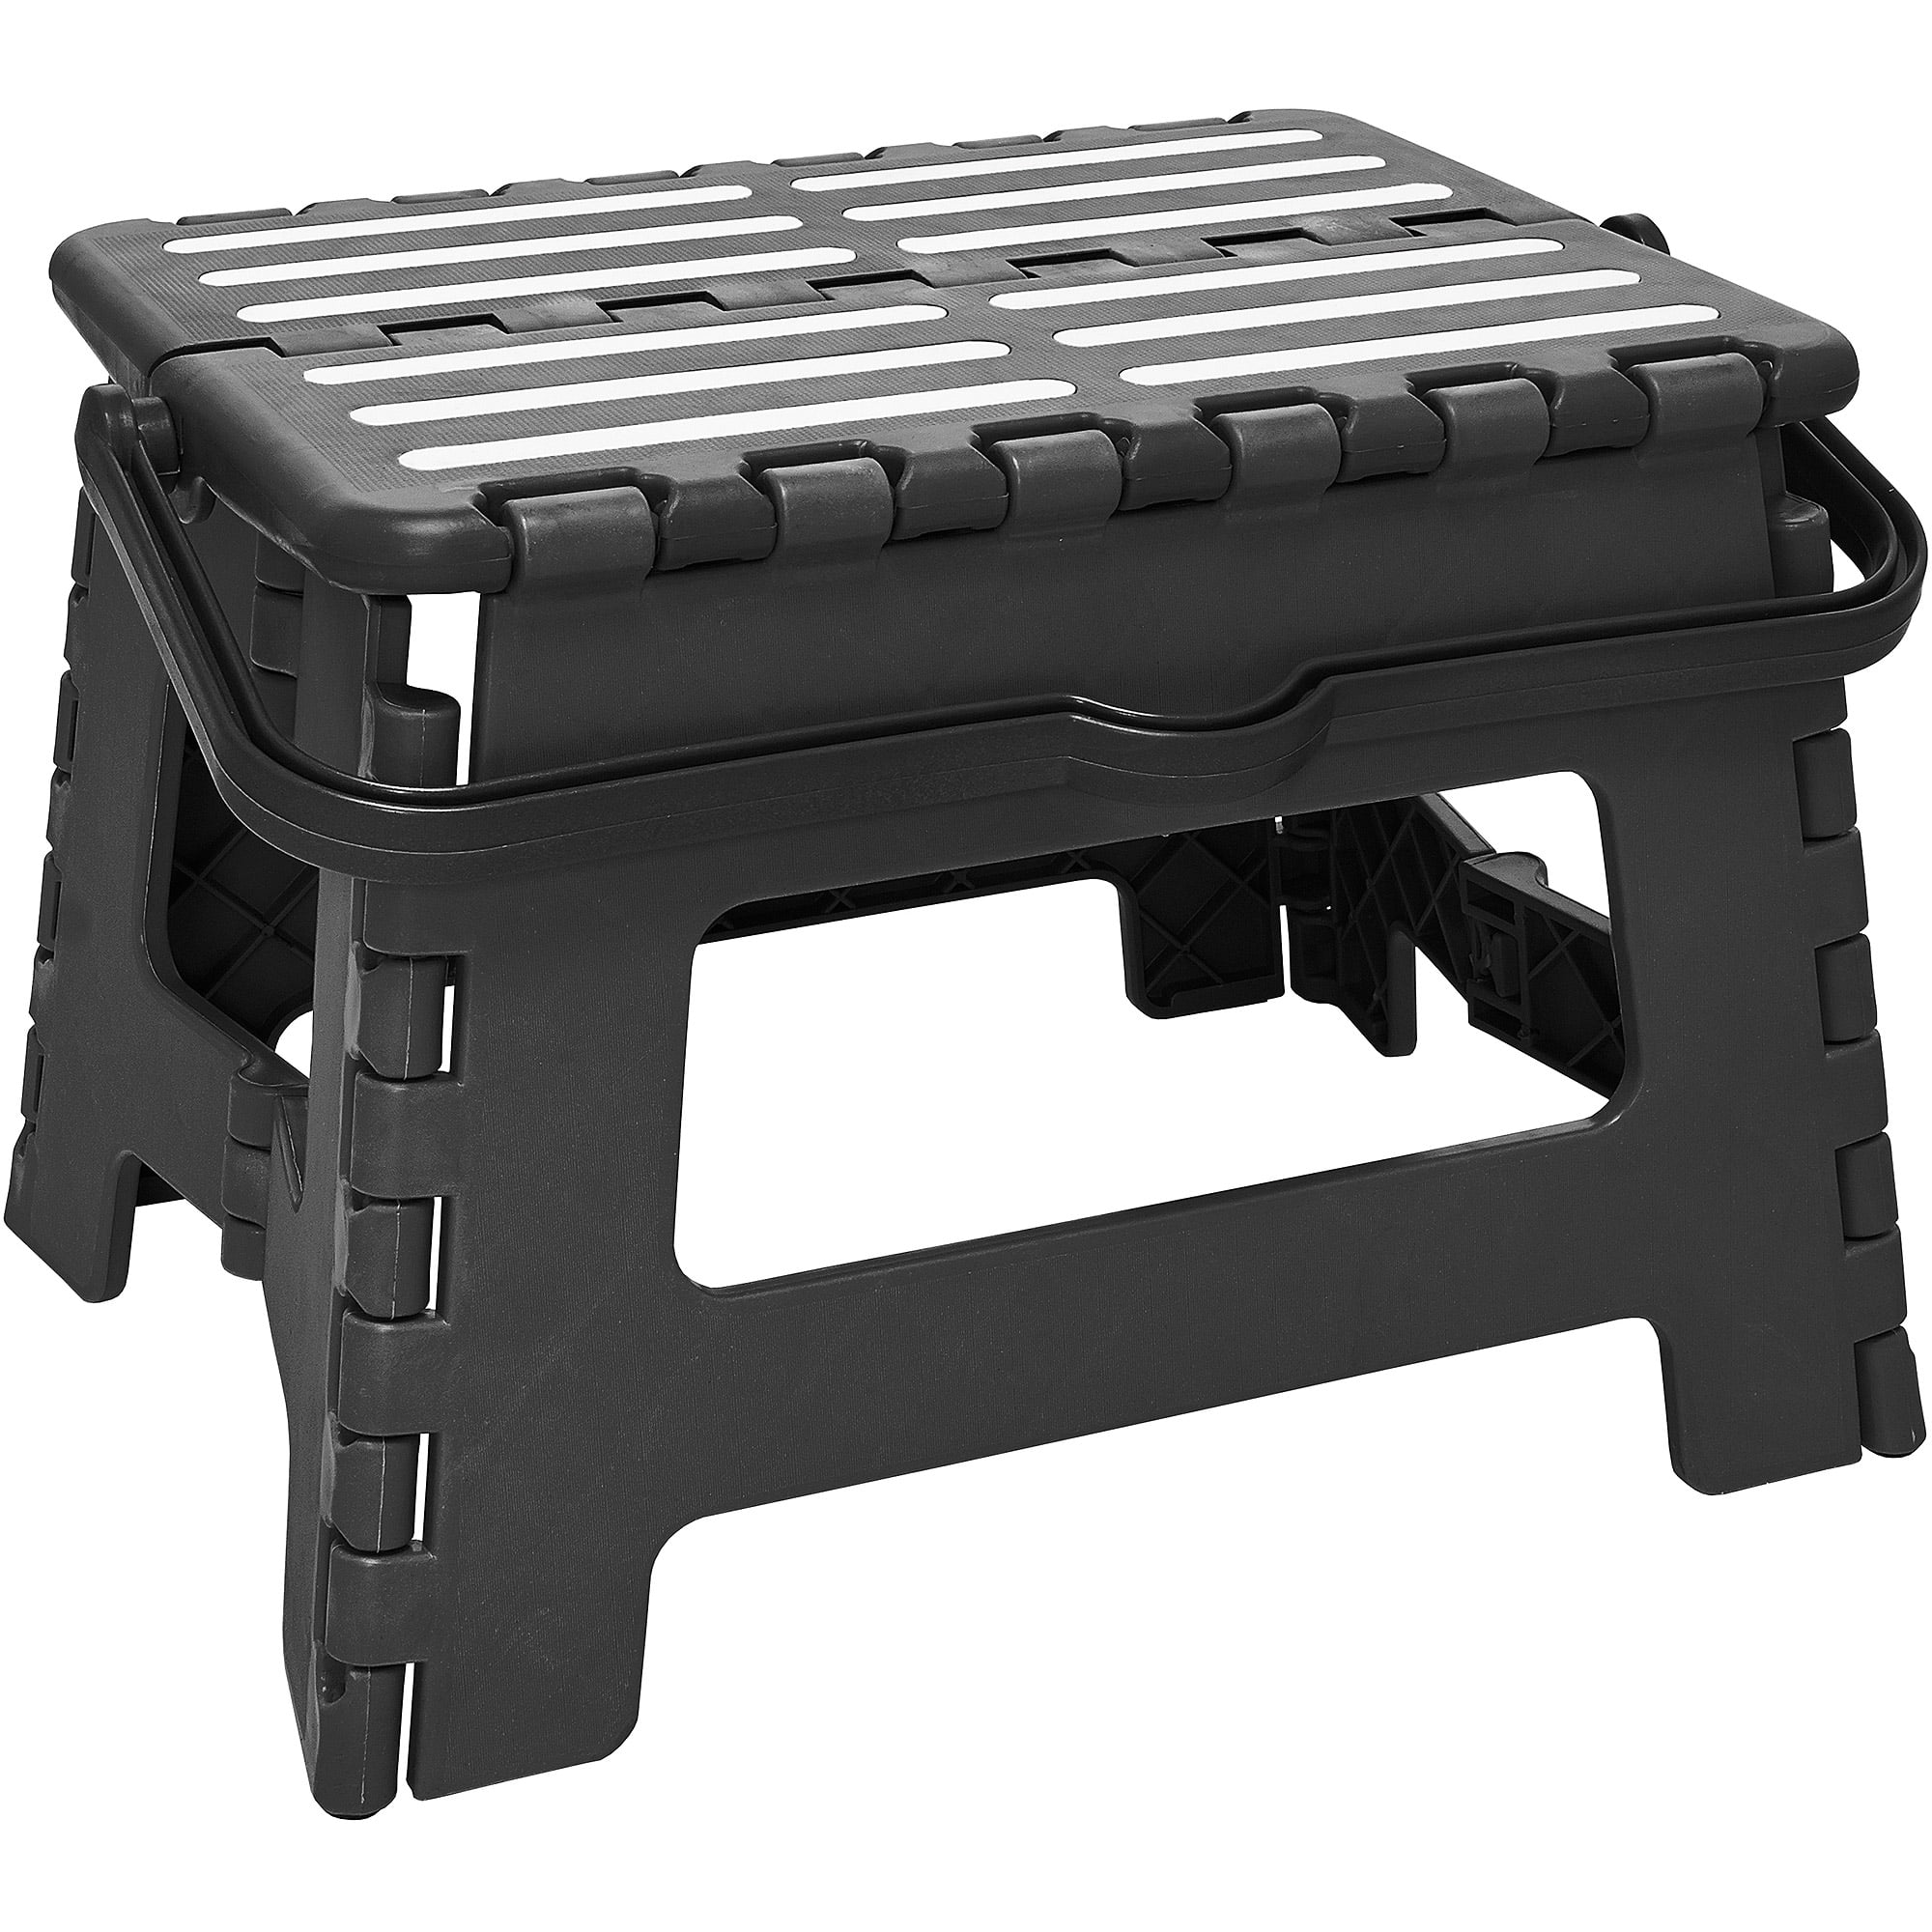 Simplify Striped Folding Step Stool with Handle. Product Variants Selector. Black  sc 1 st  Walmart & Plastic Step Stools islam-shia.org